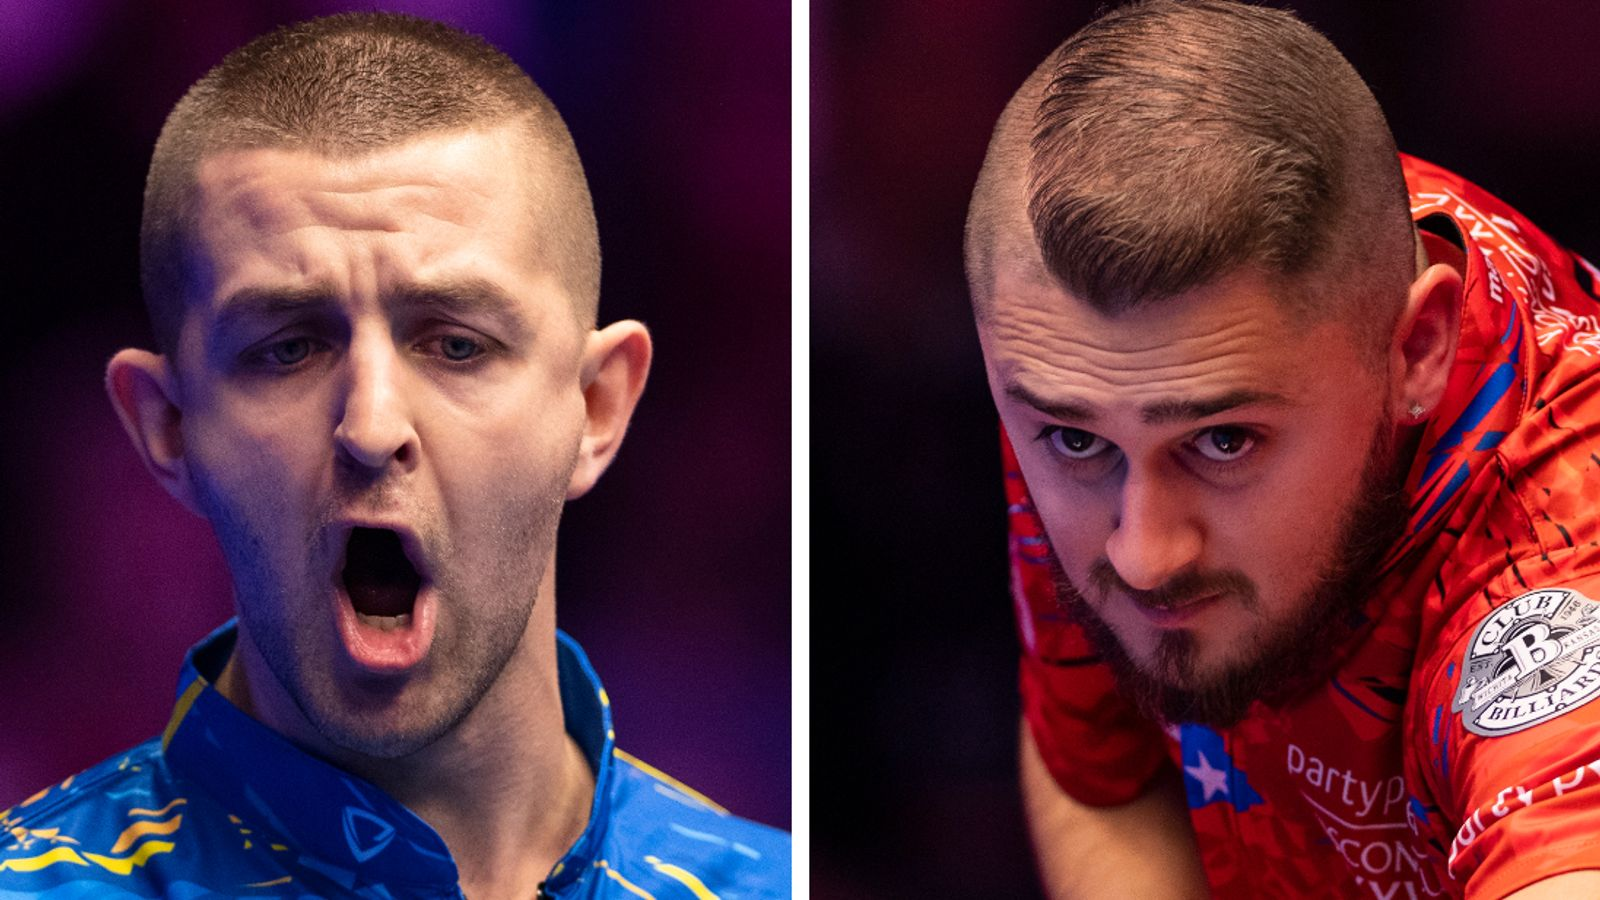 The magic of the Mosconi Cup returns to Sky Sports with Team Europe looking to regain the title